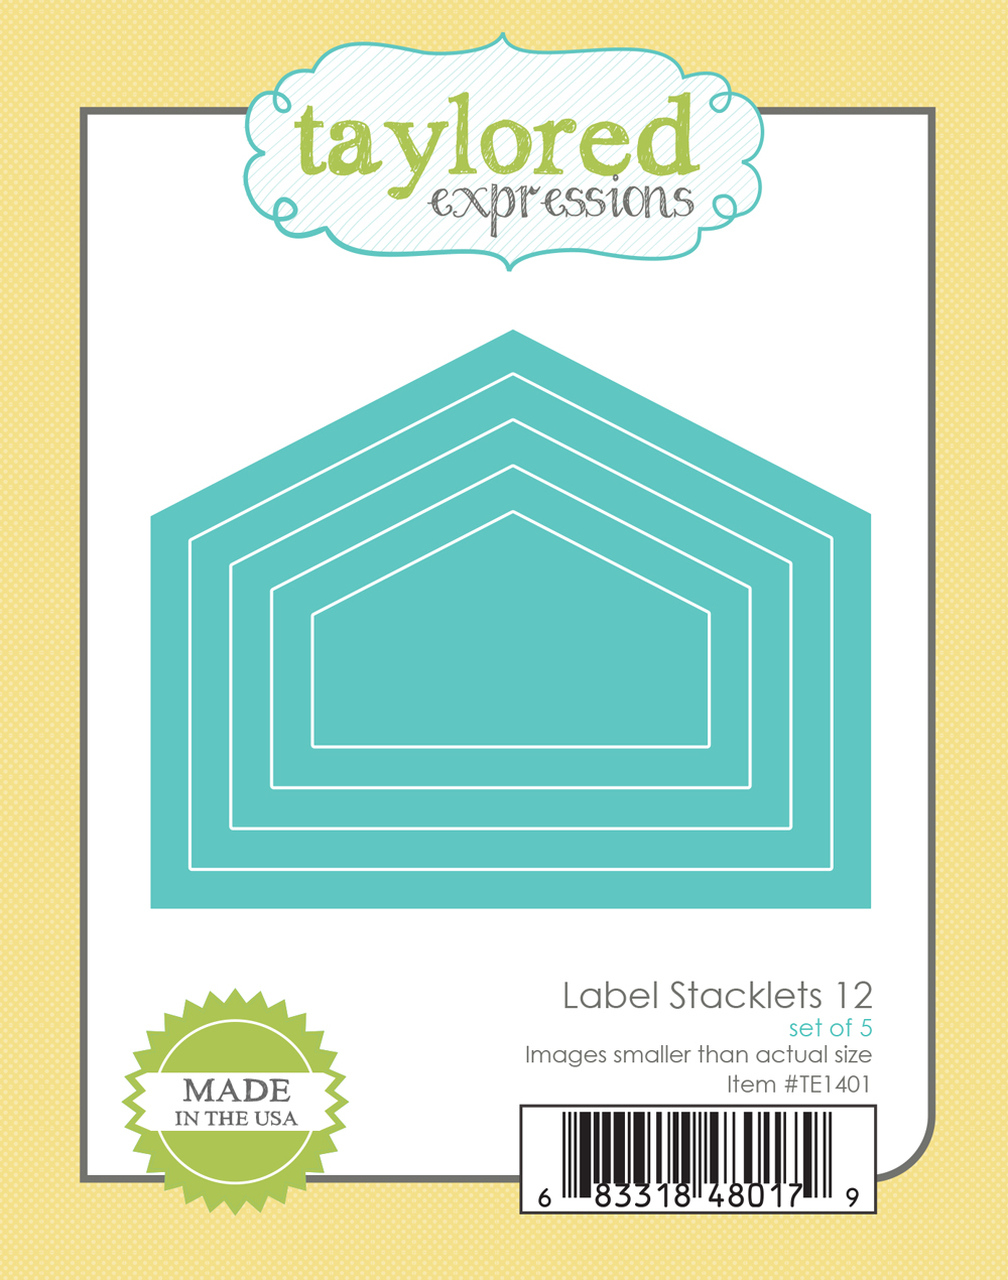 Taylored Expression - Label Stacklets 12